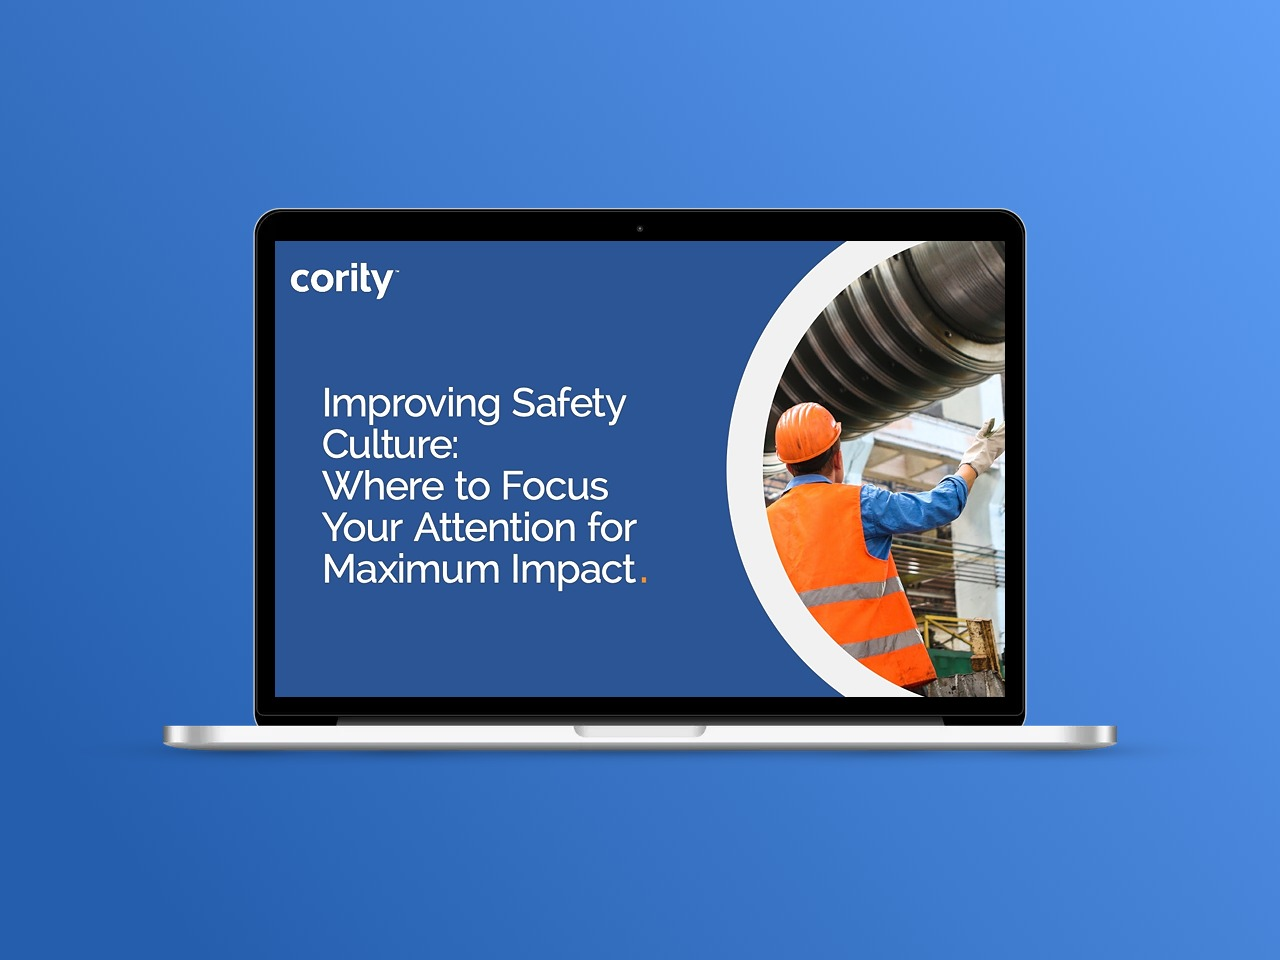 Introduction: Improving Safety Culture: Where to Focus Your Attention for Maximum Impact